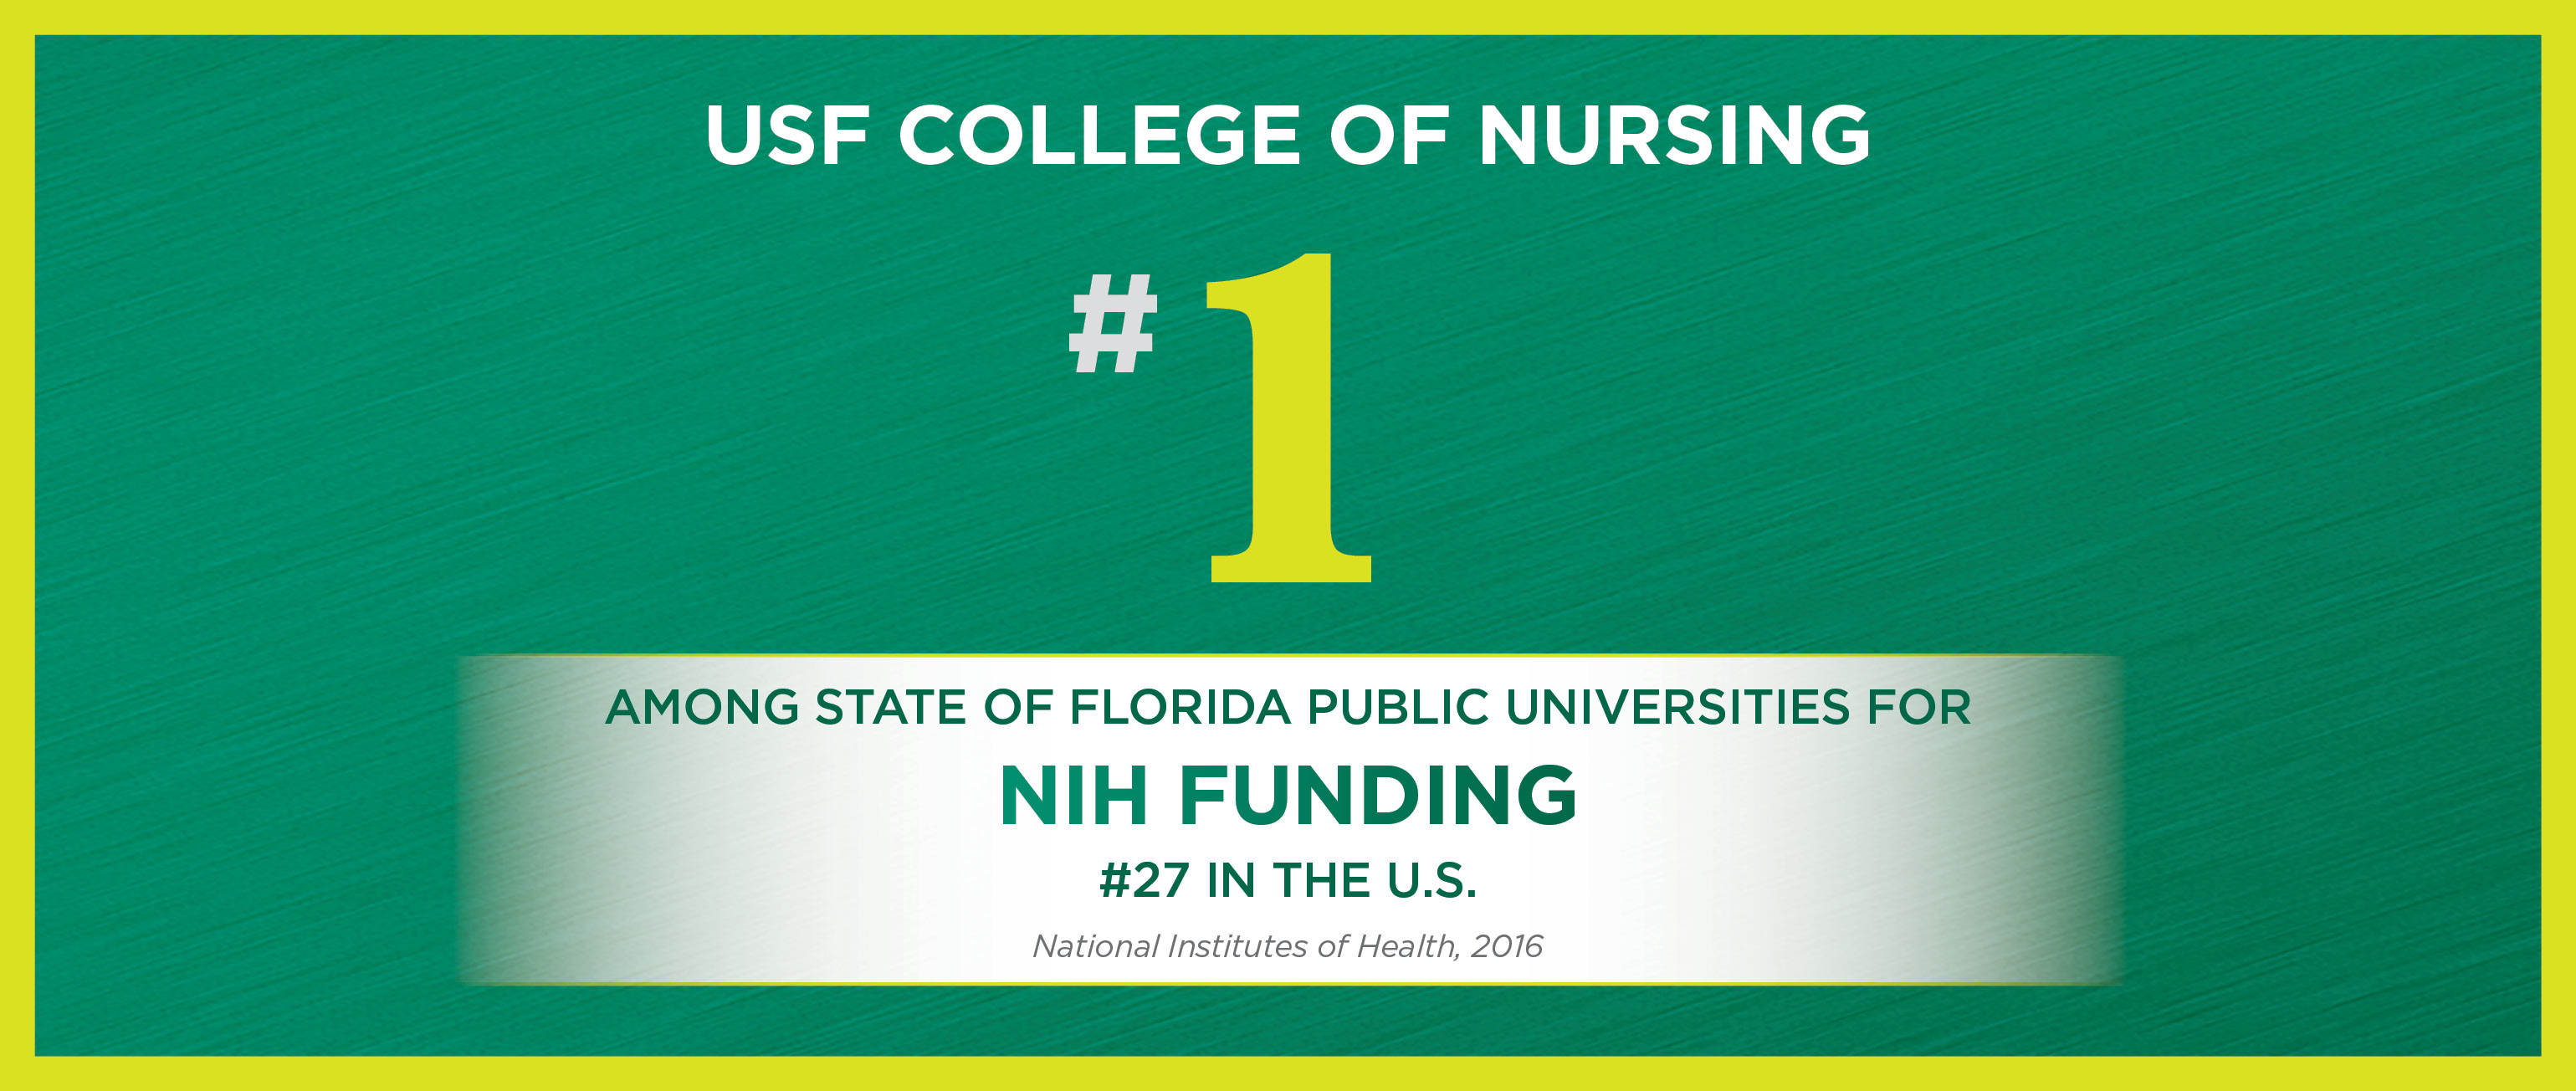 USF Health College of Nursing Research Ranking